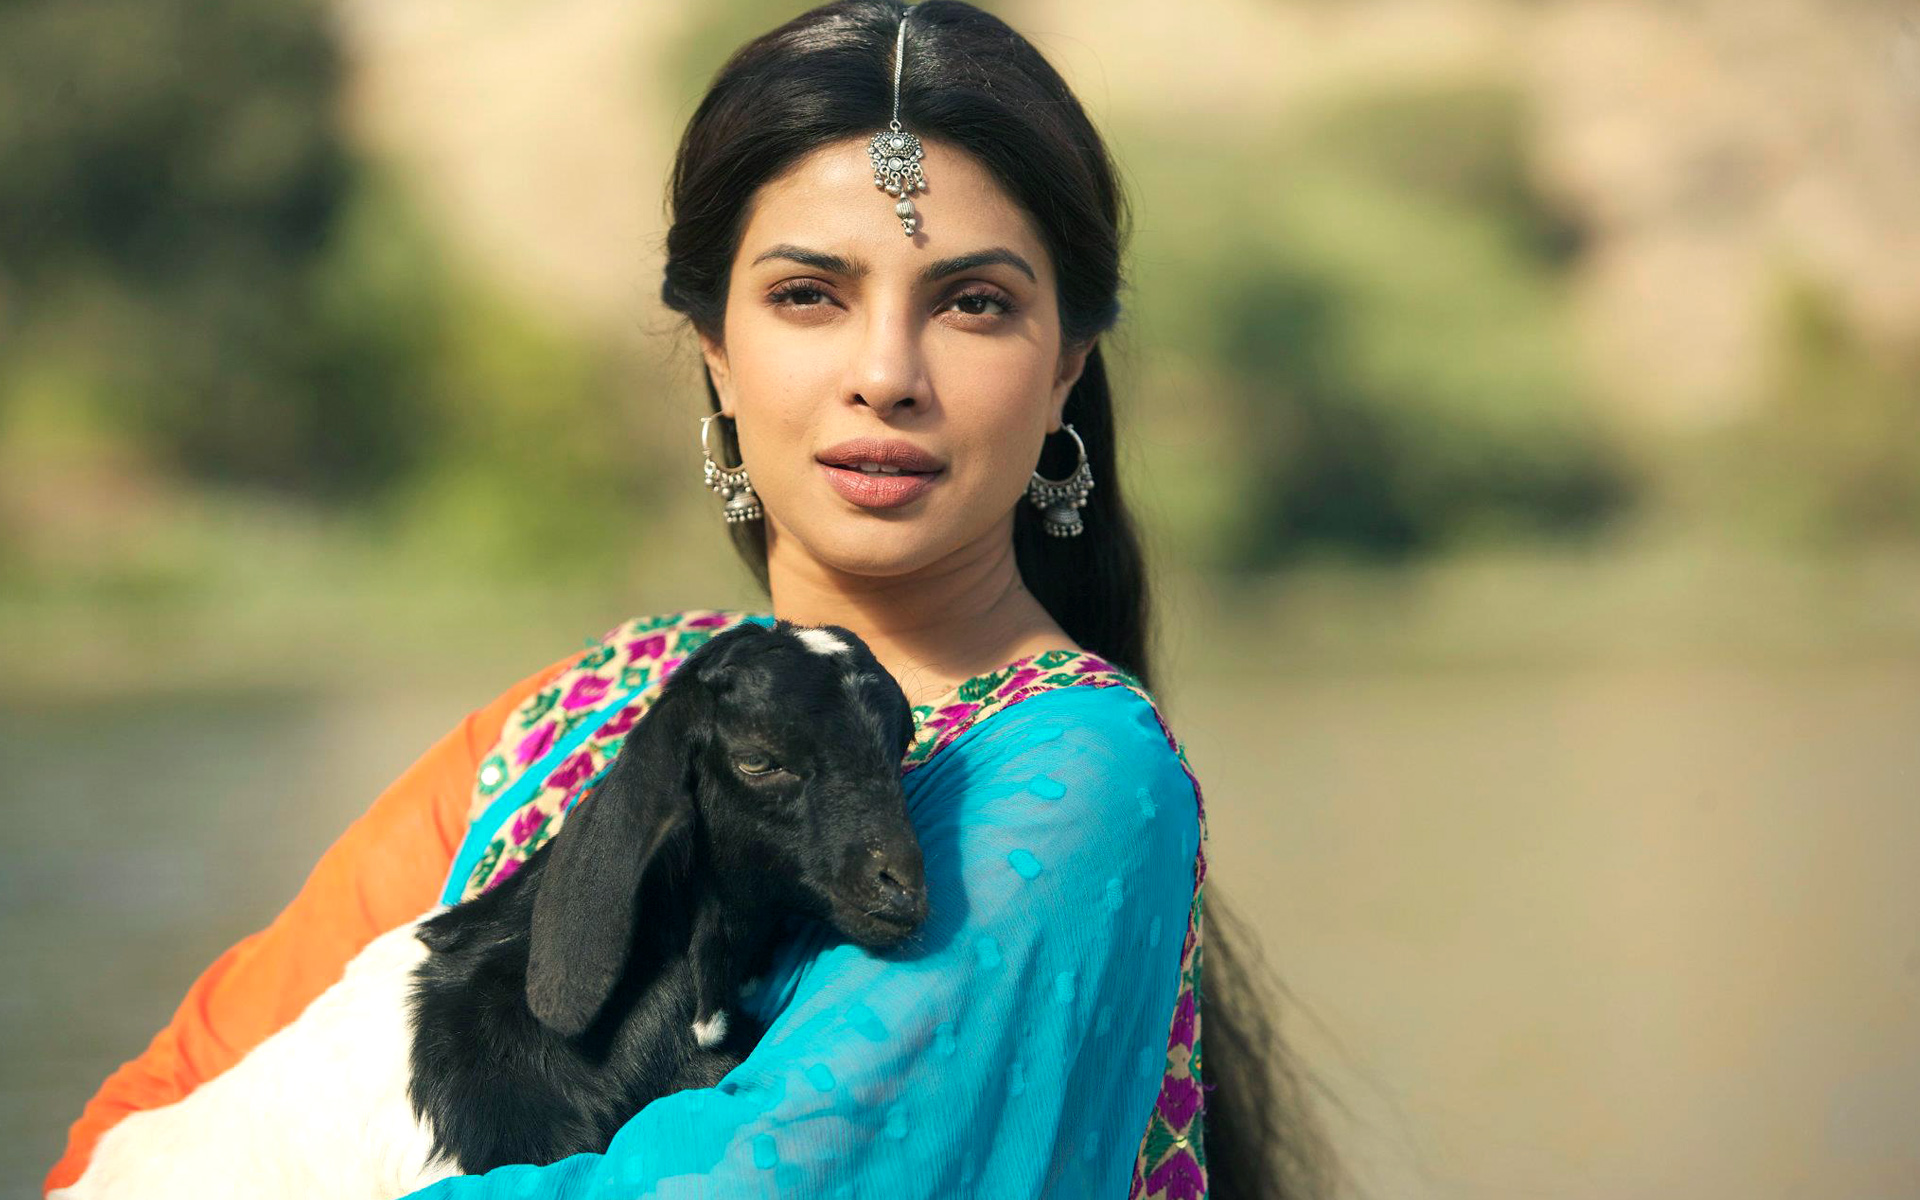 Fantastic Priyanka Chopra With Goat Look Hd Mobile Background Desktop Images Free